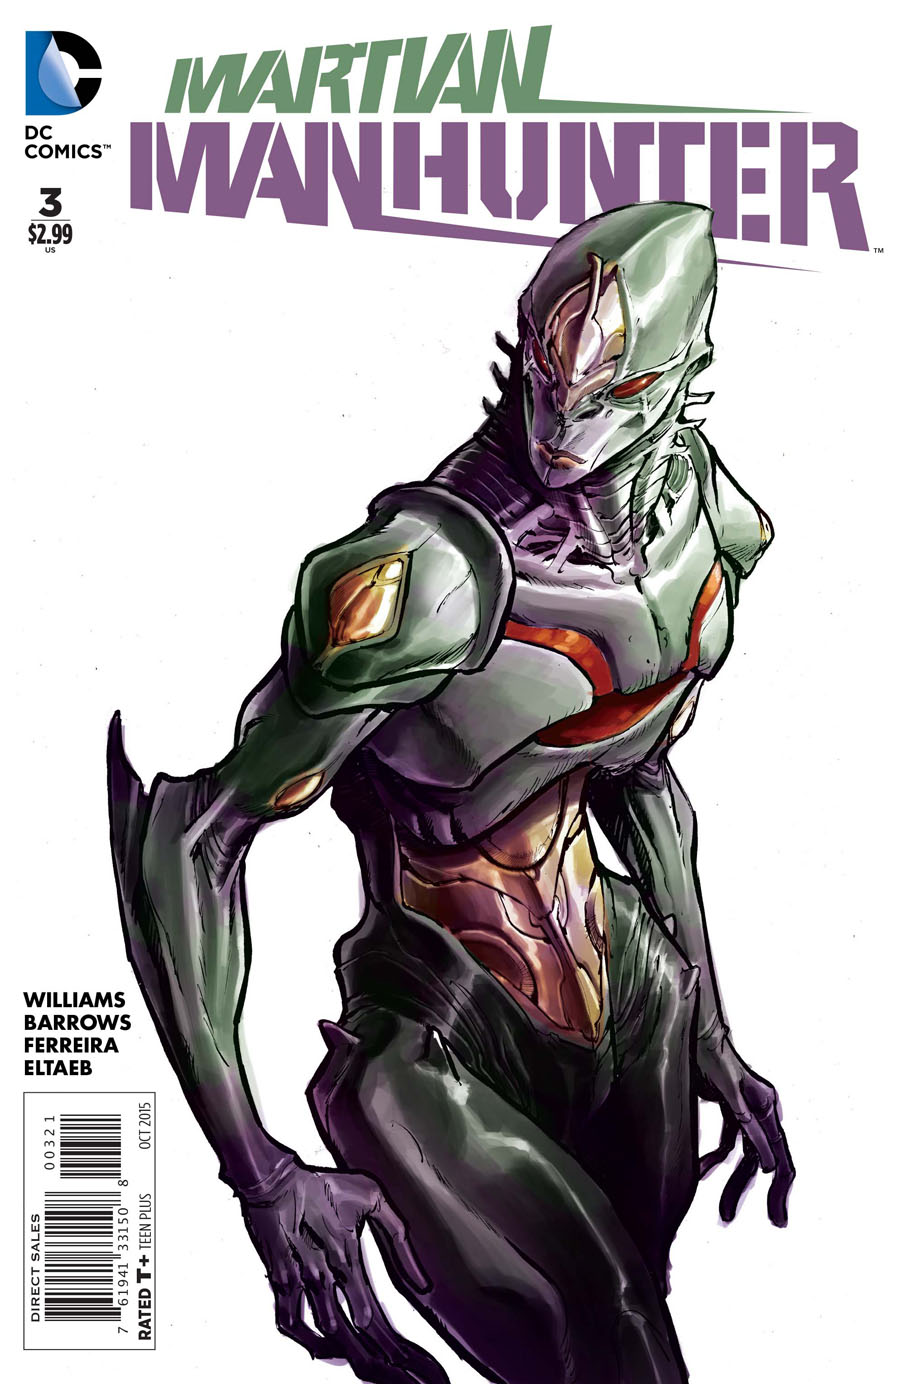 Martian Manhunter Vol 4 #3 Cover B Incentive Eric Canete Variant Cover